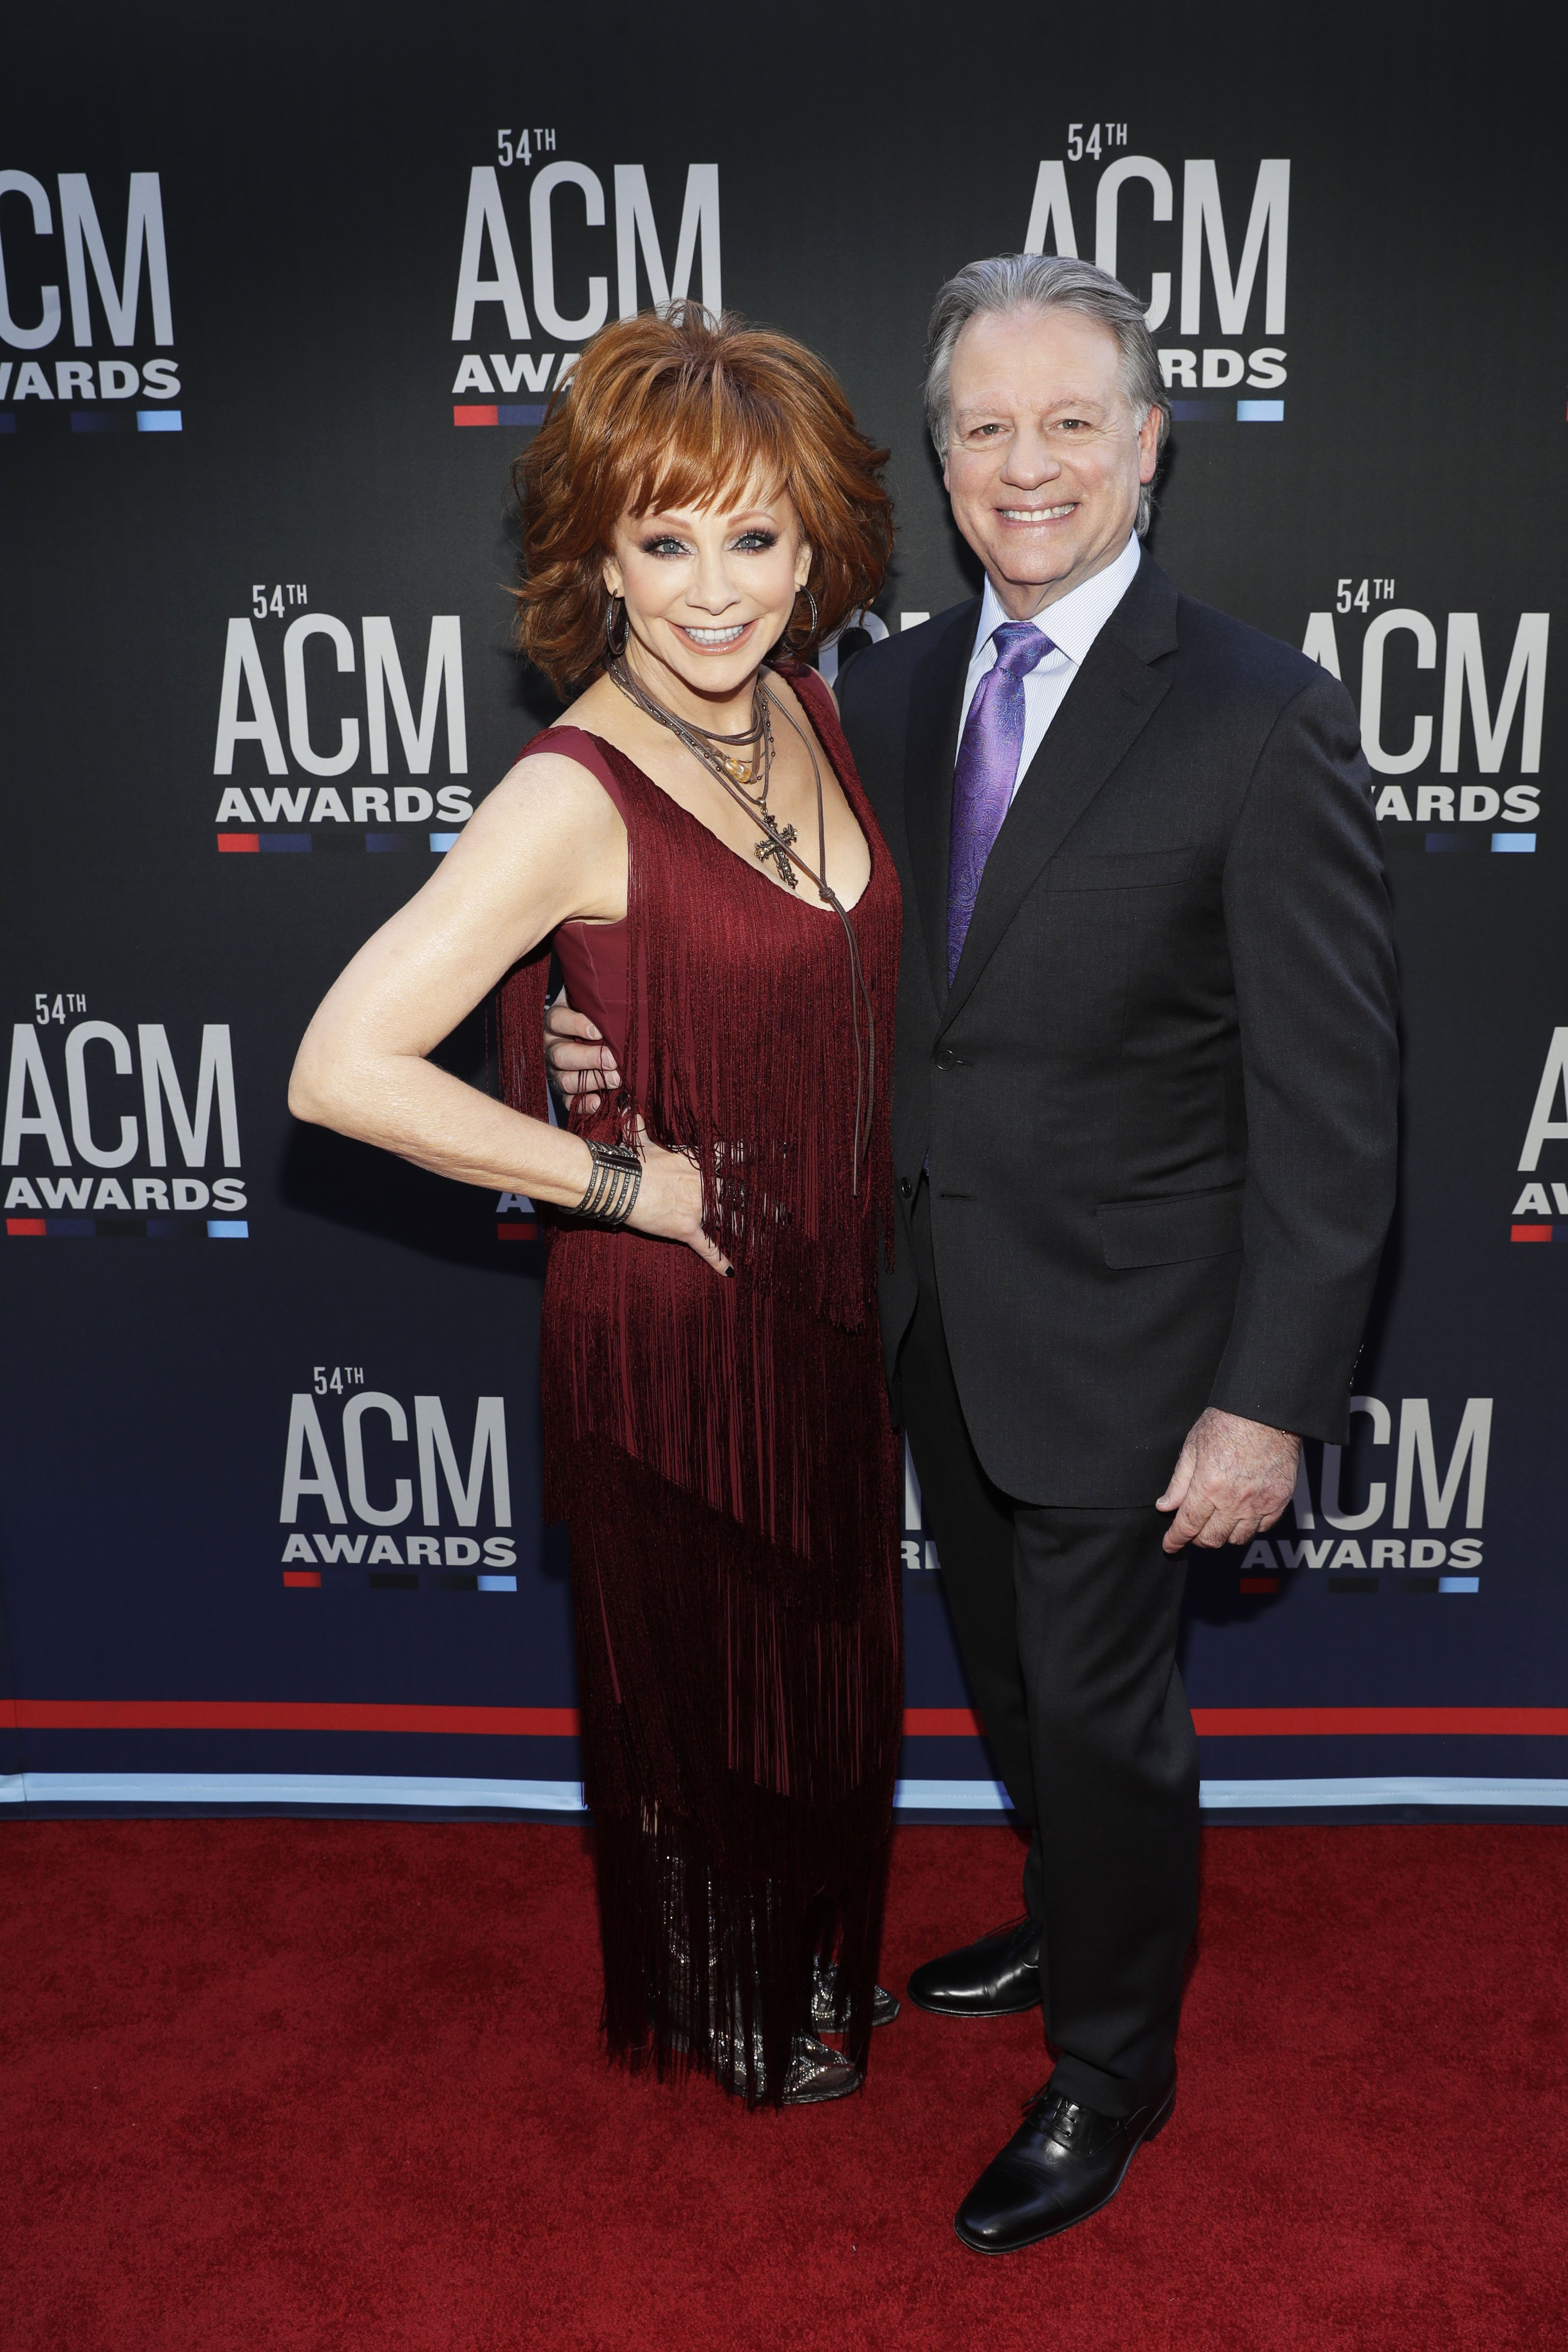 Reba McEntire and Anthony Lasuzzo attend the 54th annual Academy of Country Music Awards | Photo: Getty Images